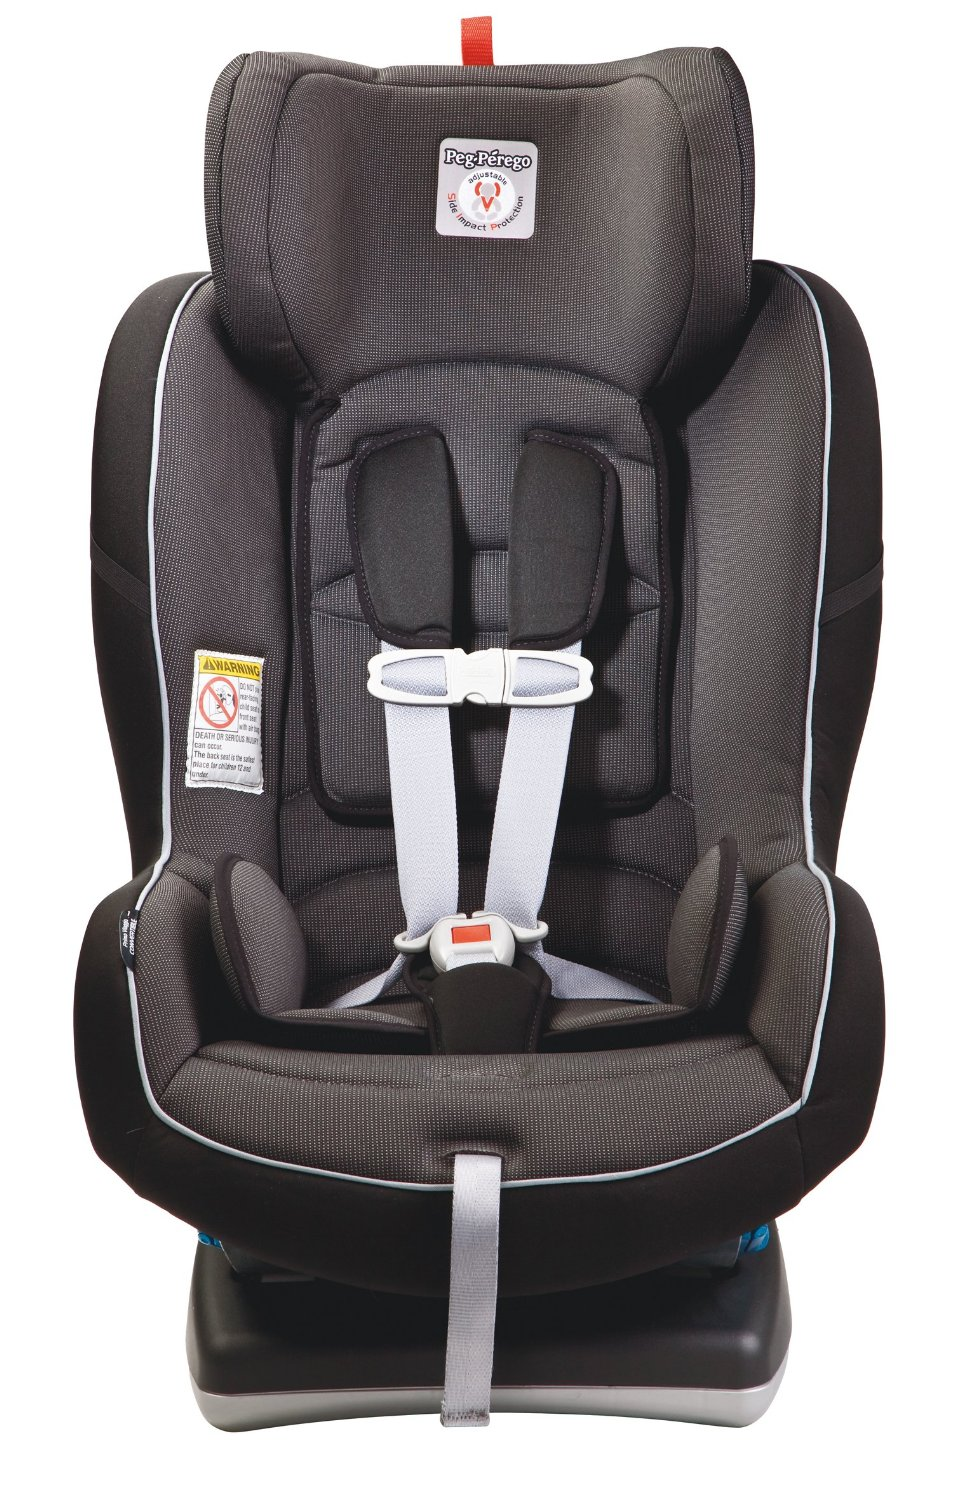 peg perego convertible car seat classy baby gear. Black Bedroom Furniture Sets. Home Design Ideas